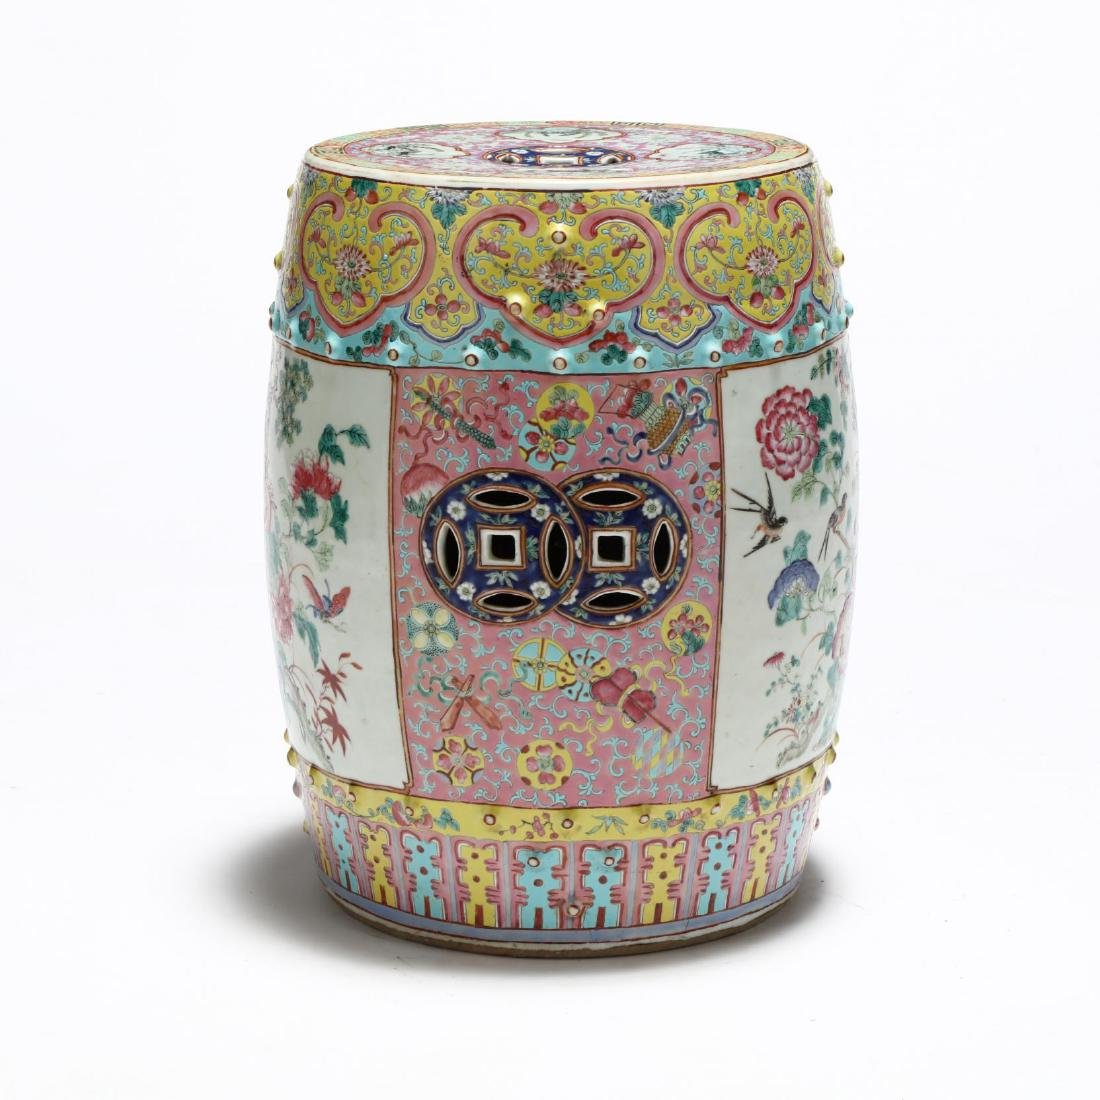 A Chinese Famille Rose Drum Garden Stool - 5